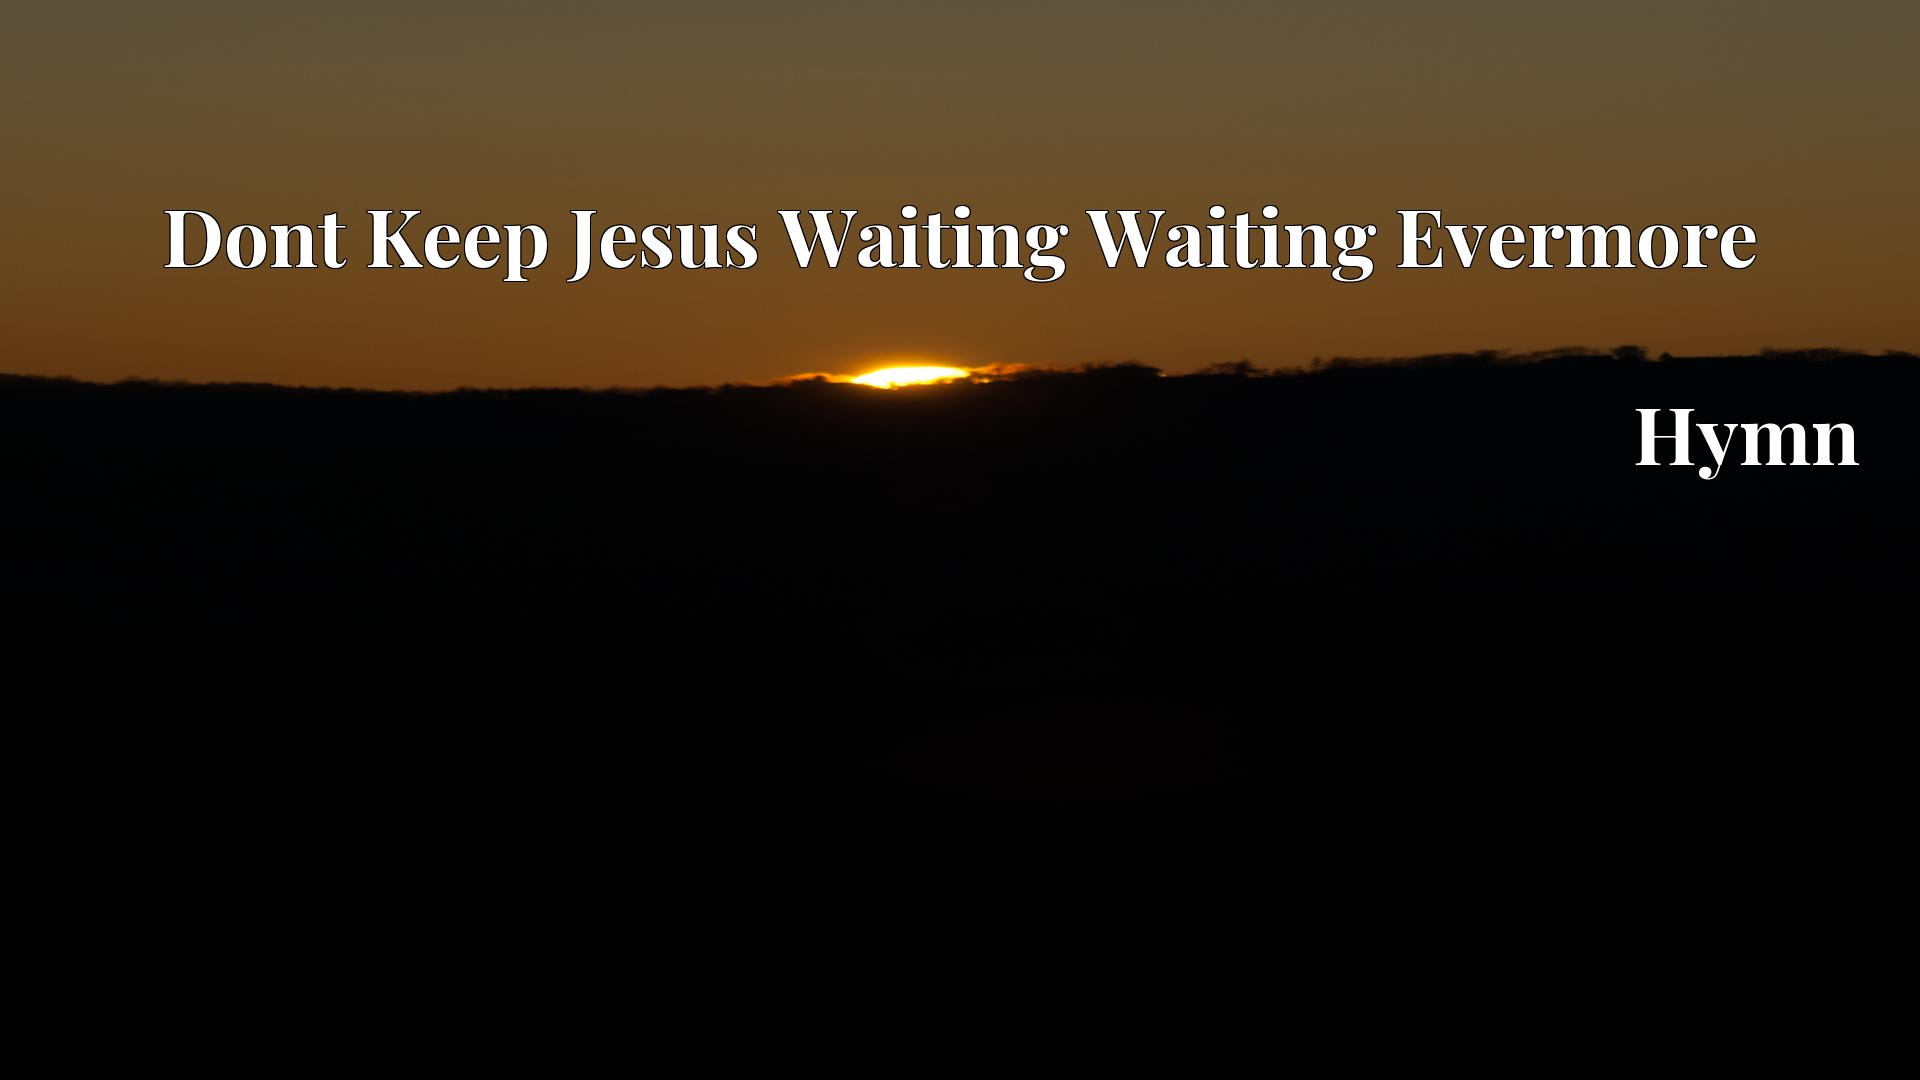 Dont Keep Jesus Waiting Waiting Evermore - Hymn